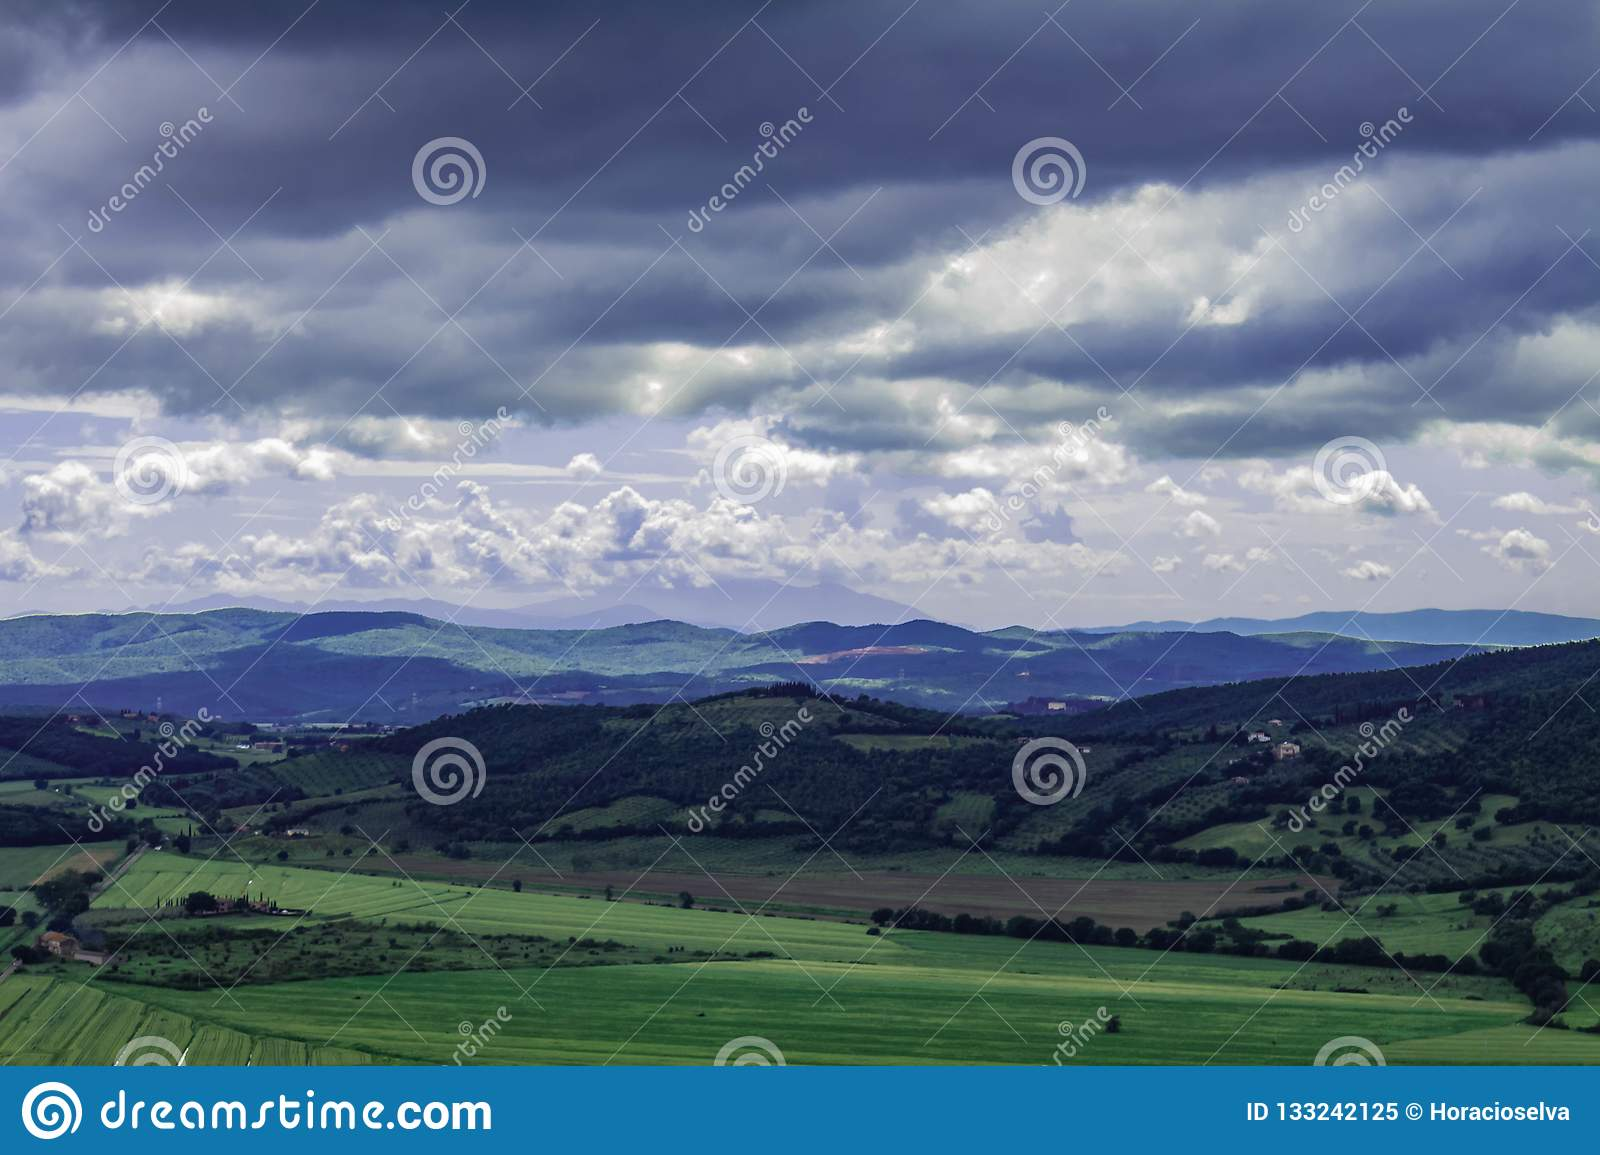 Panoramic view of the italian tuscany. The mountains in the distance are covered by clouds